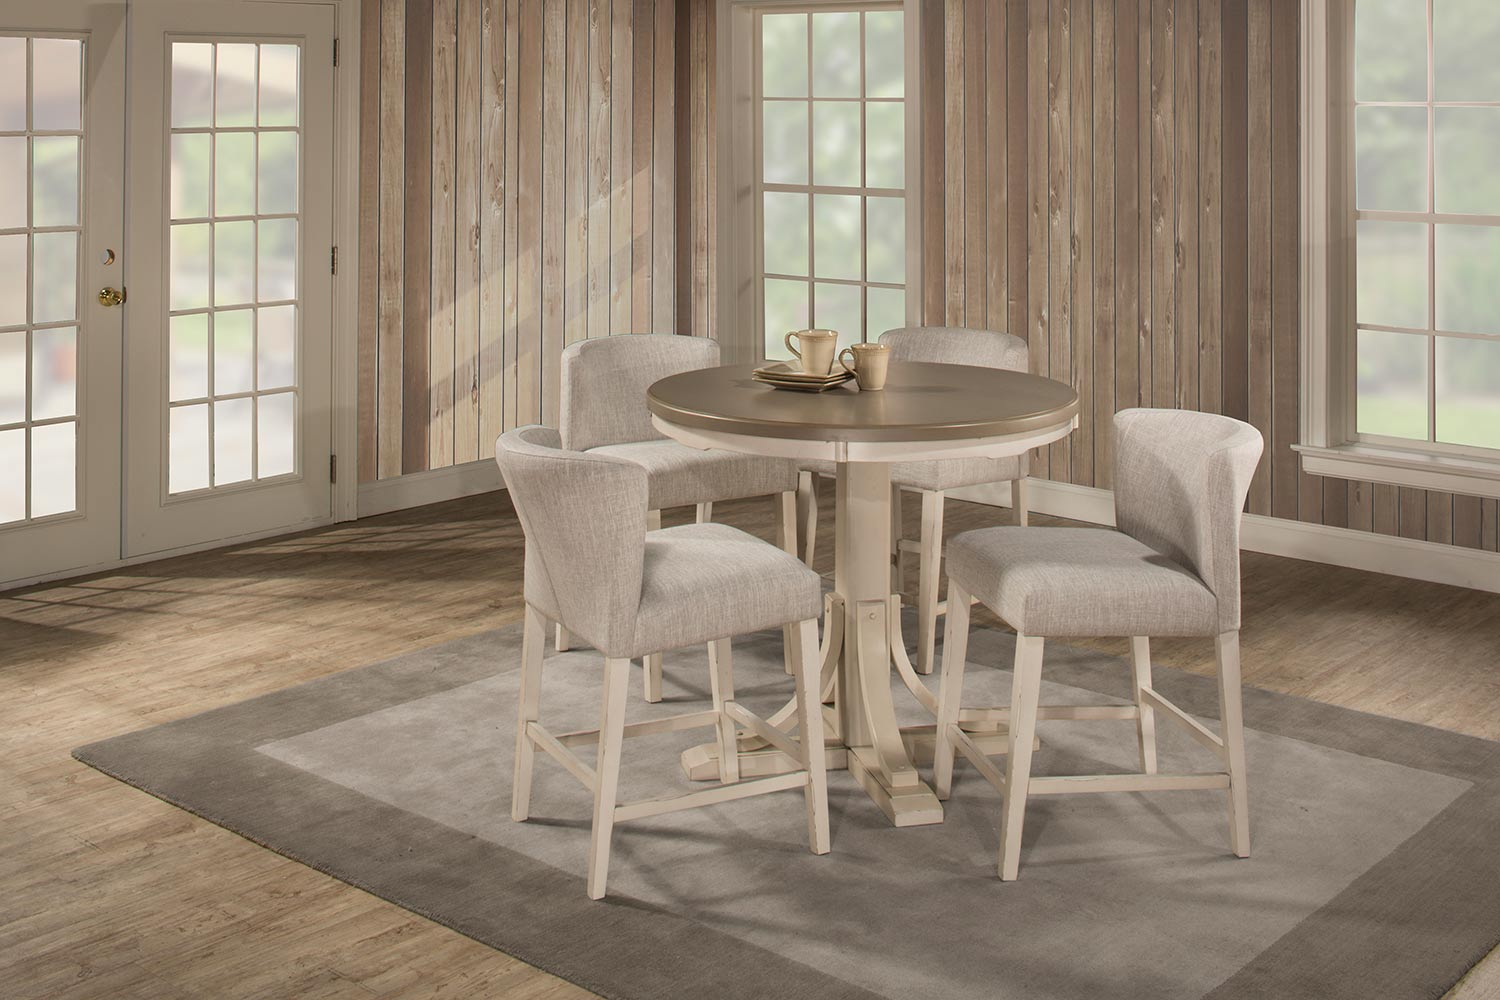 Hillsdale Clarion 5-Piece Round Counter Height Dining Set with Wing Arm Stools - Gray/White